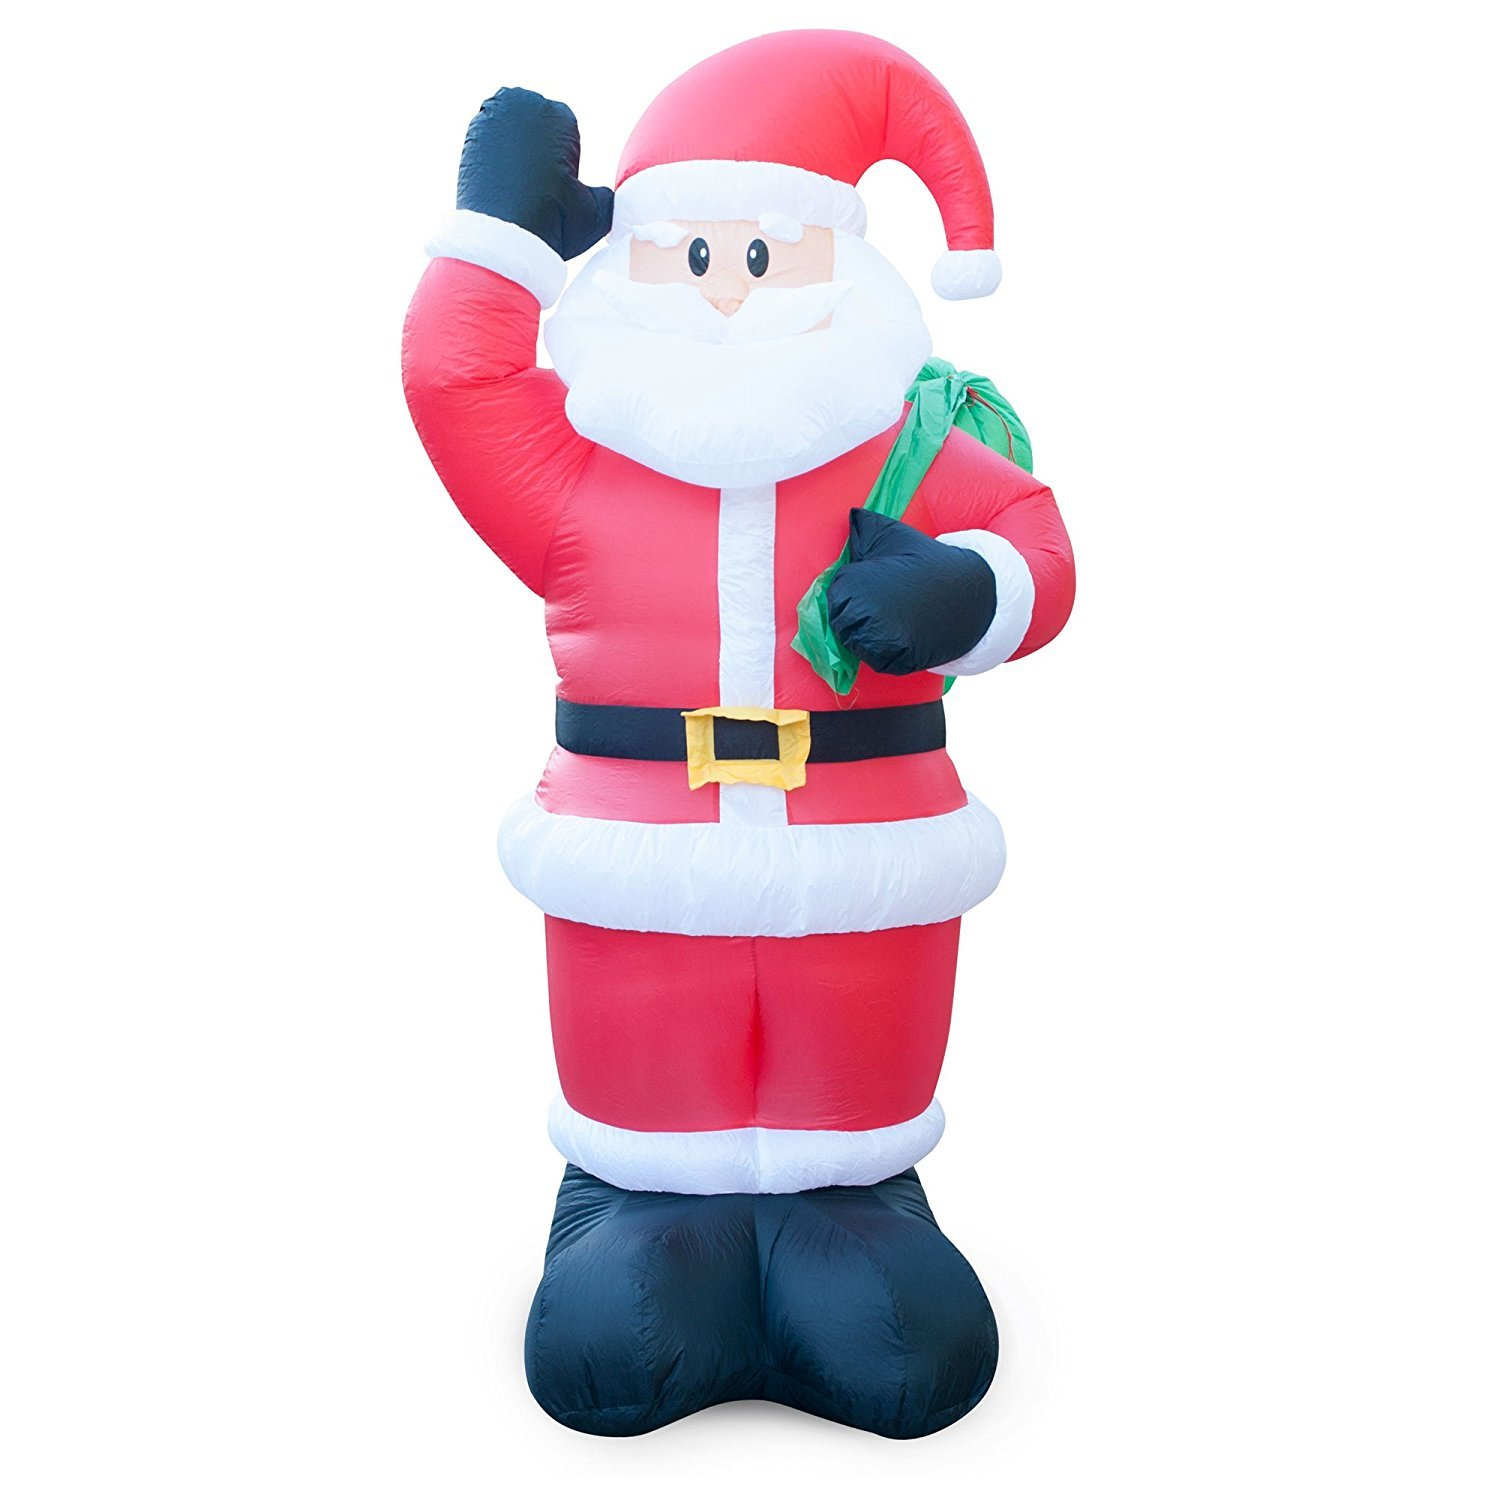 Holidayana 8 Ft Animated Waving Santa Inflatable Christmas Lawn Decoration